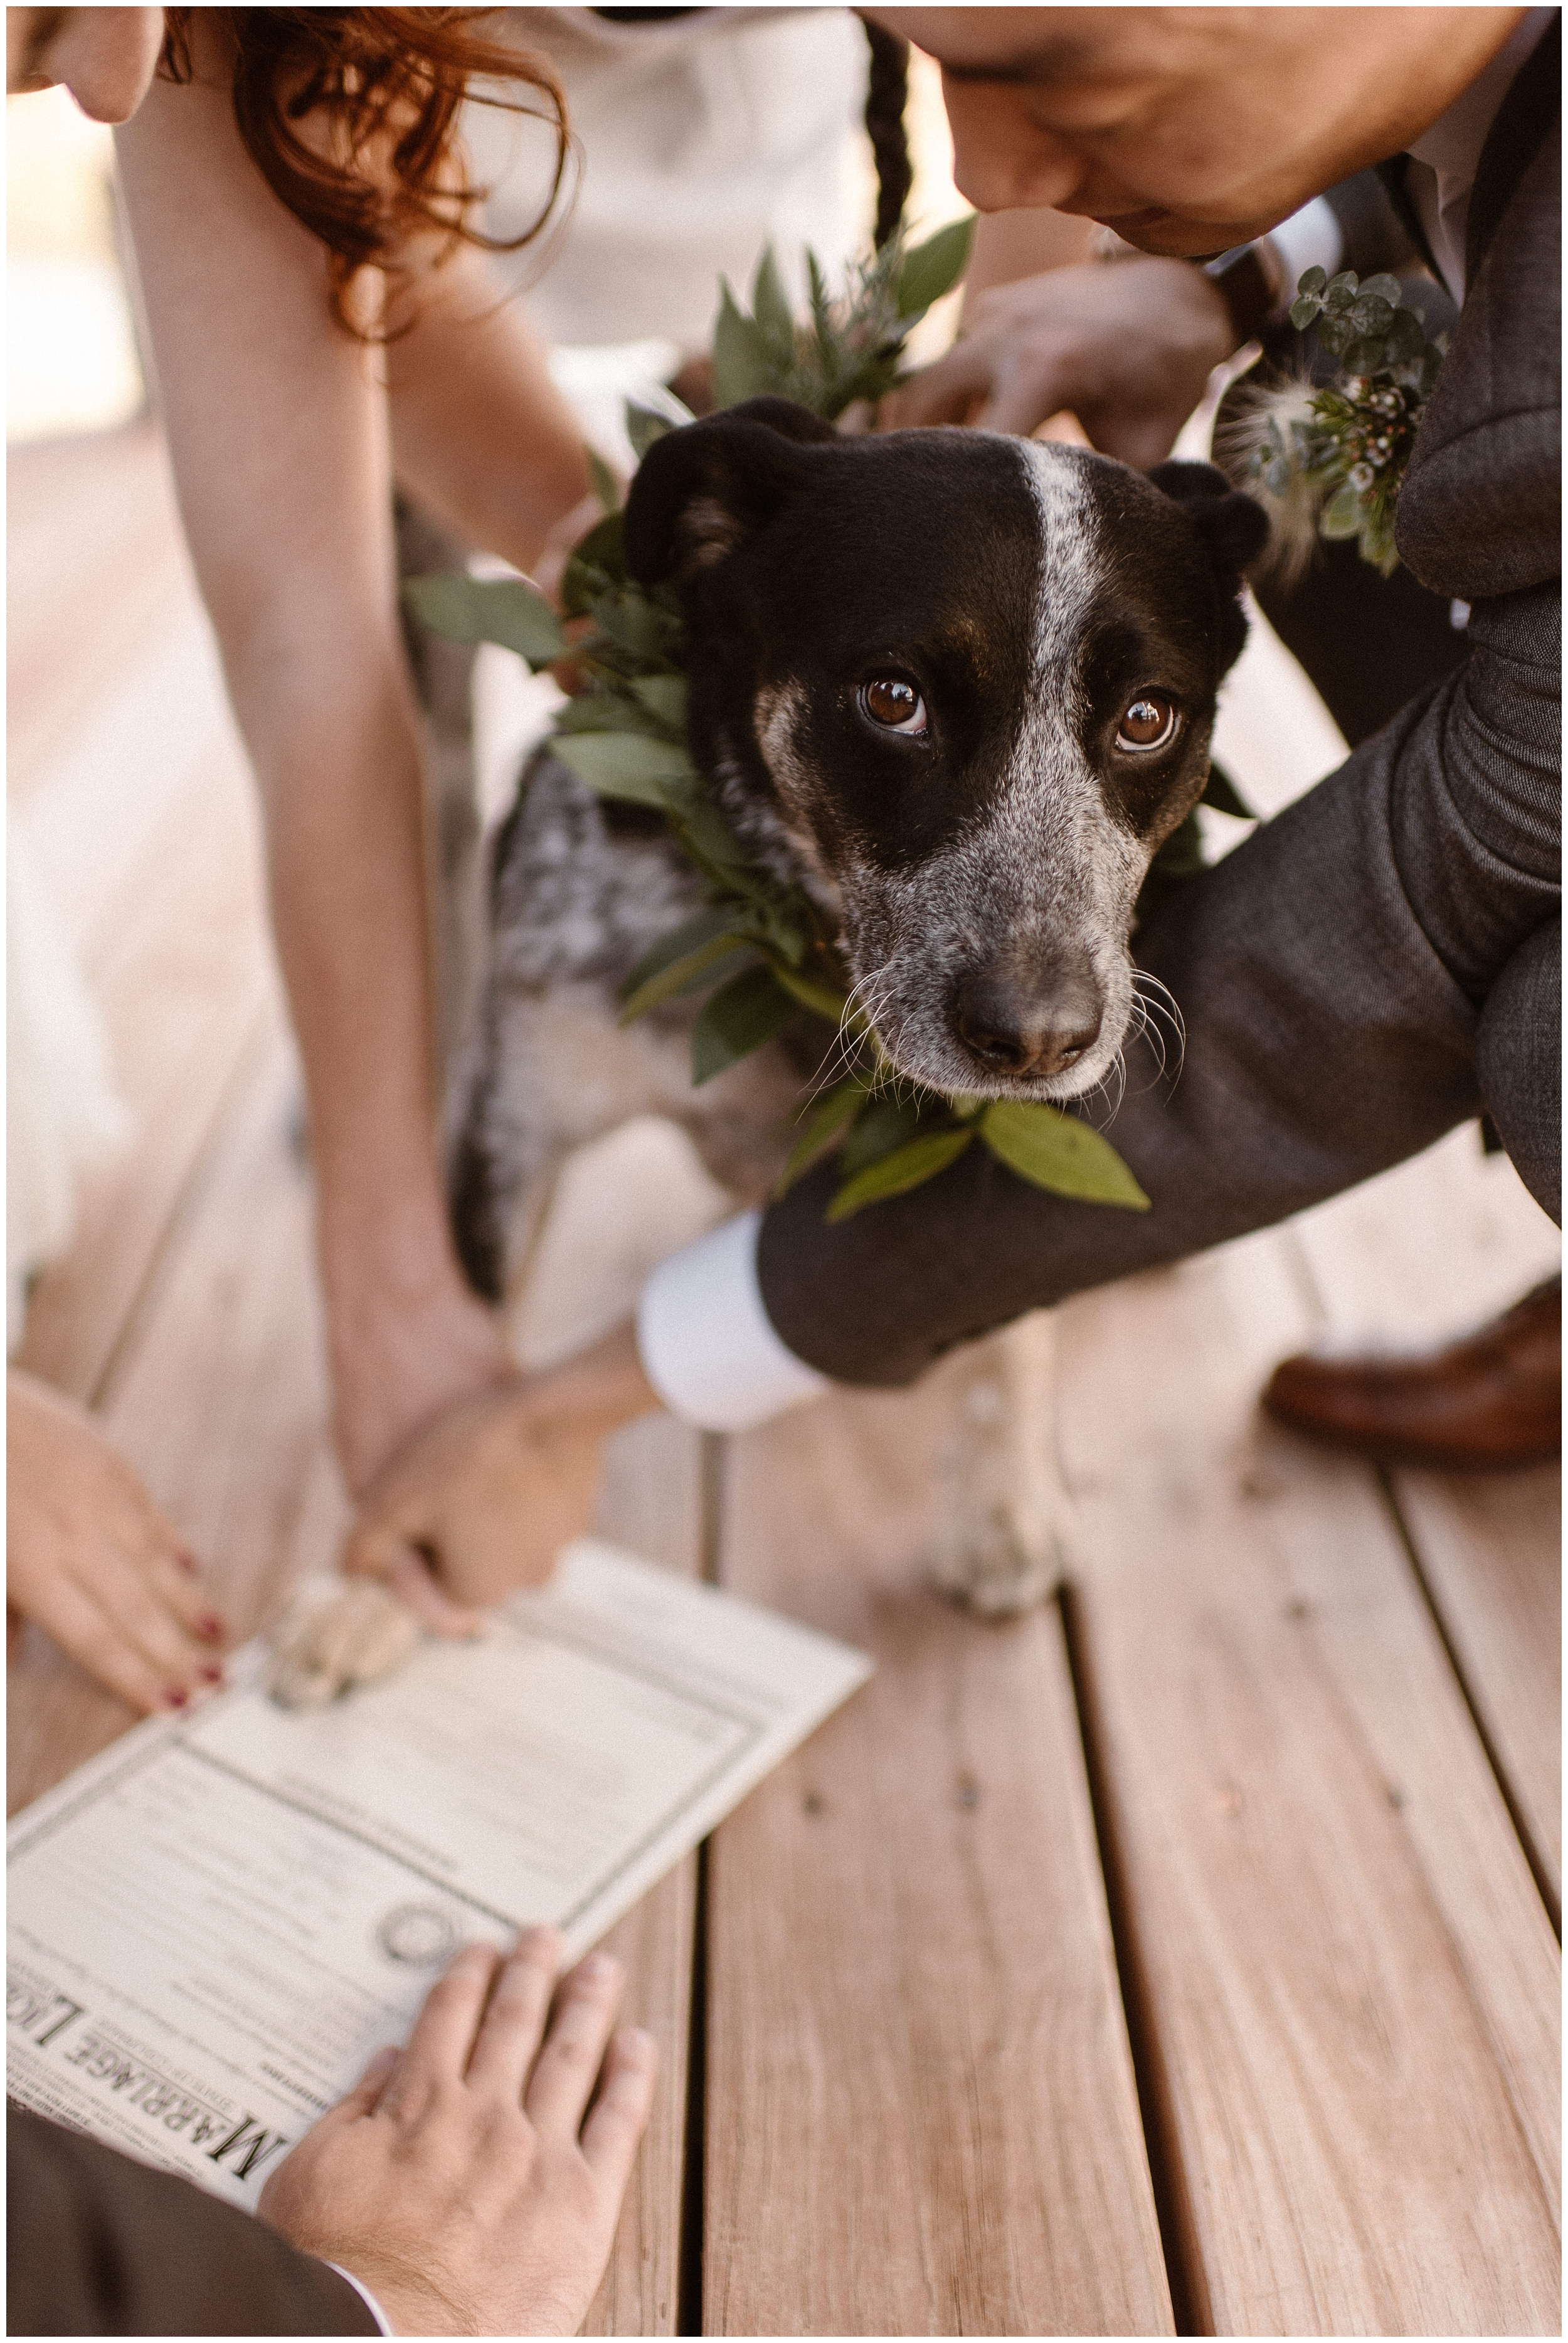 A bride and groom take their dog's paw and press it to their marriage license. In Colorado, you can use your dog as your witness as part of your self-solemnizing elopement ceremony. This is one the best elopement ideas to include in your small simple wedding (when you can).